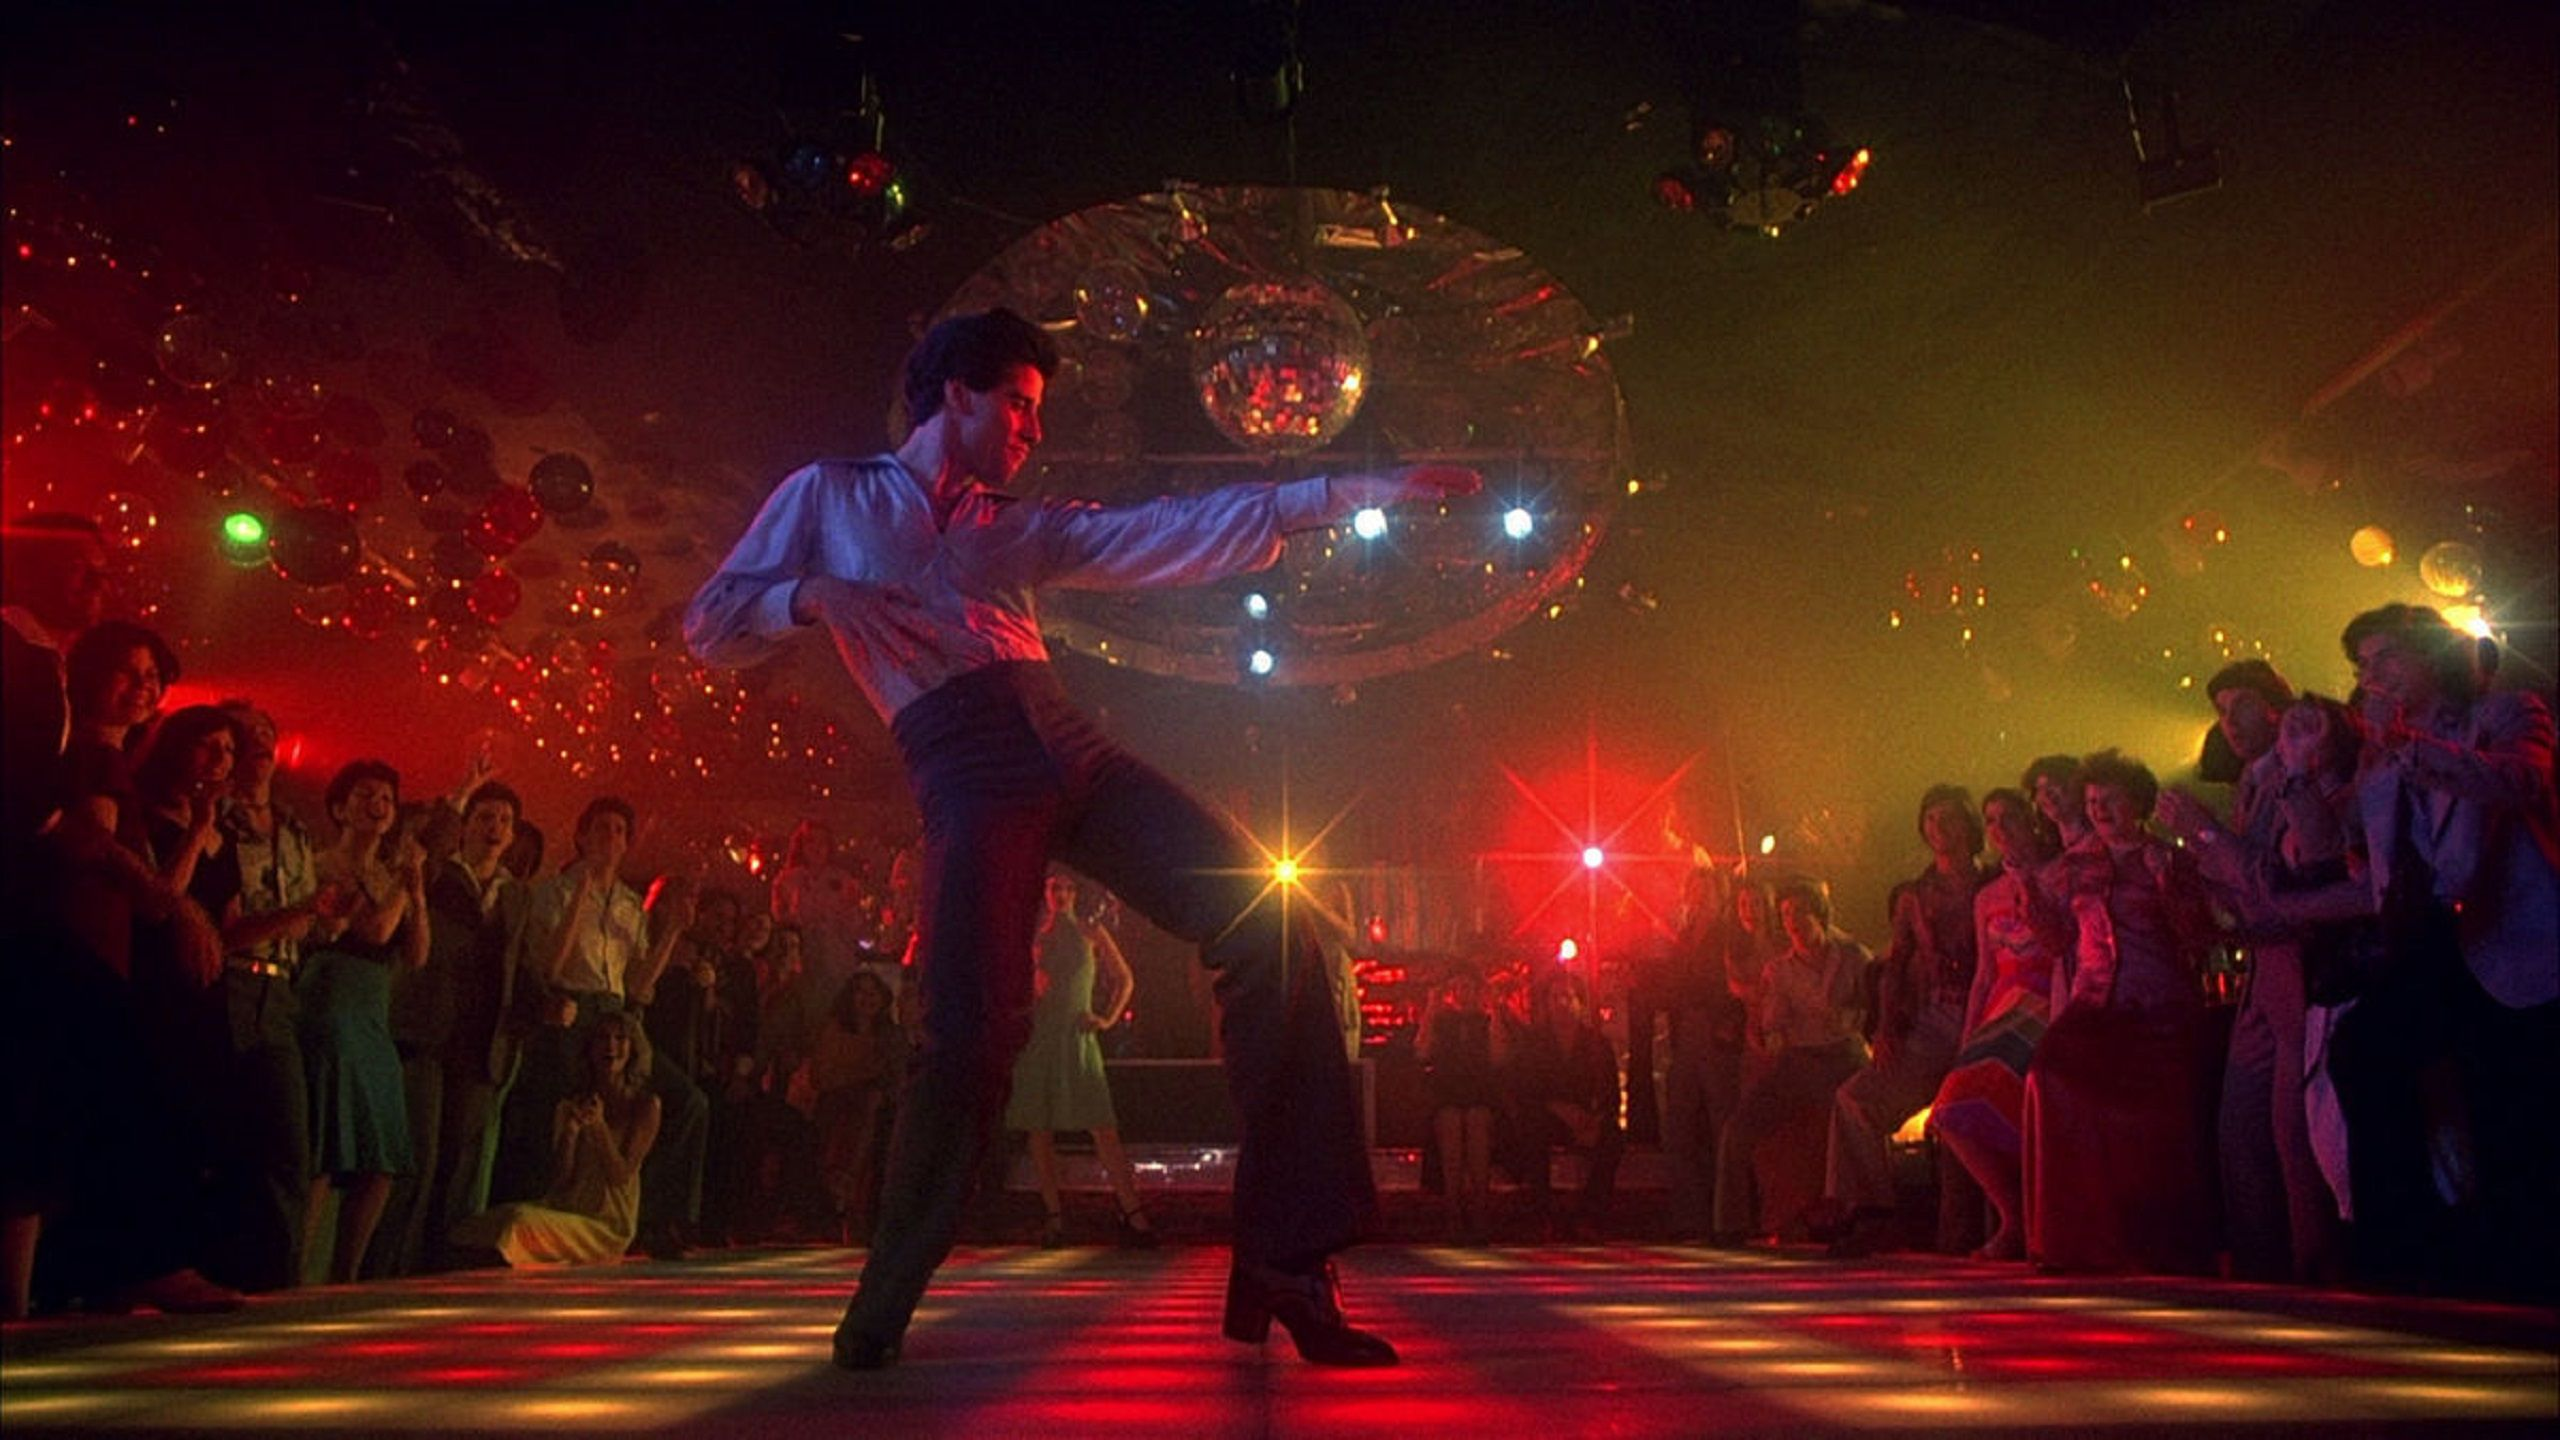 Saturday Night Fever 1977 John Travolta dancing